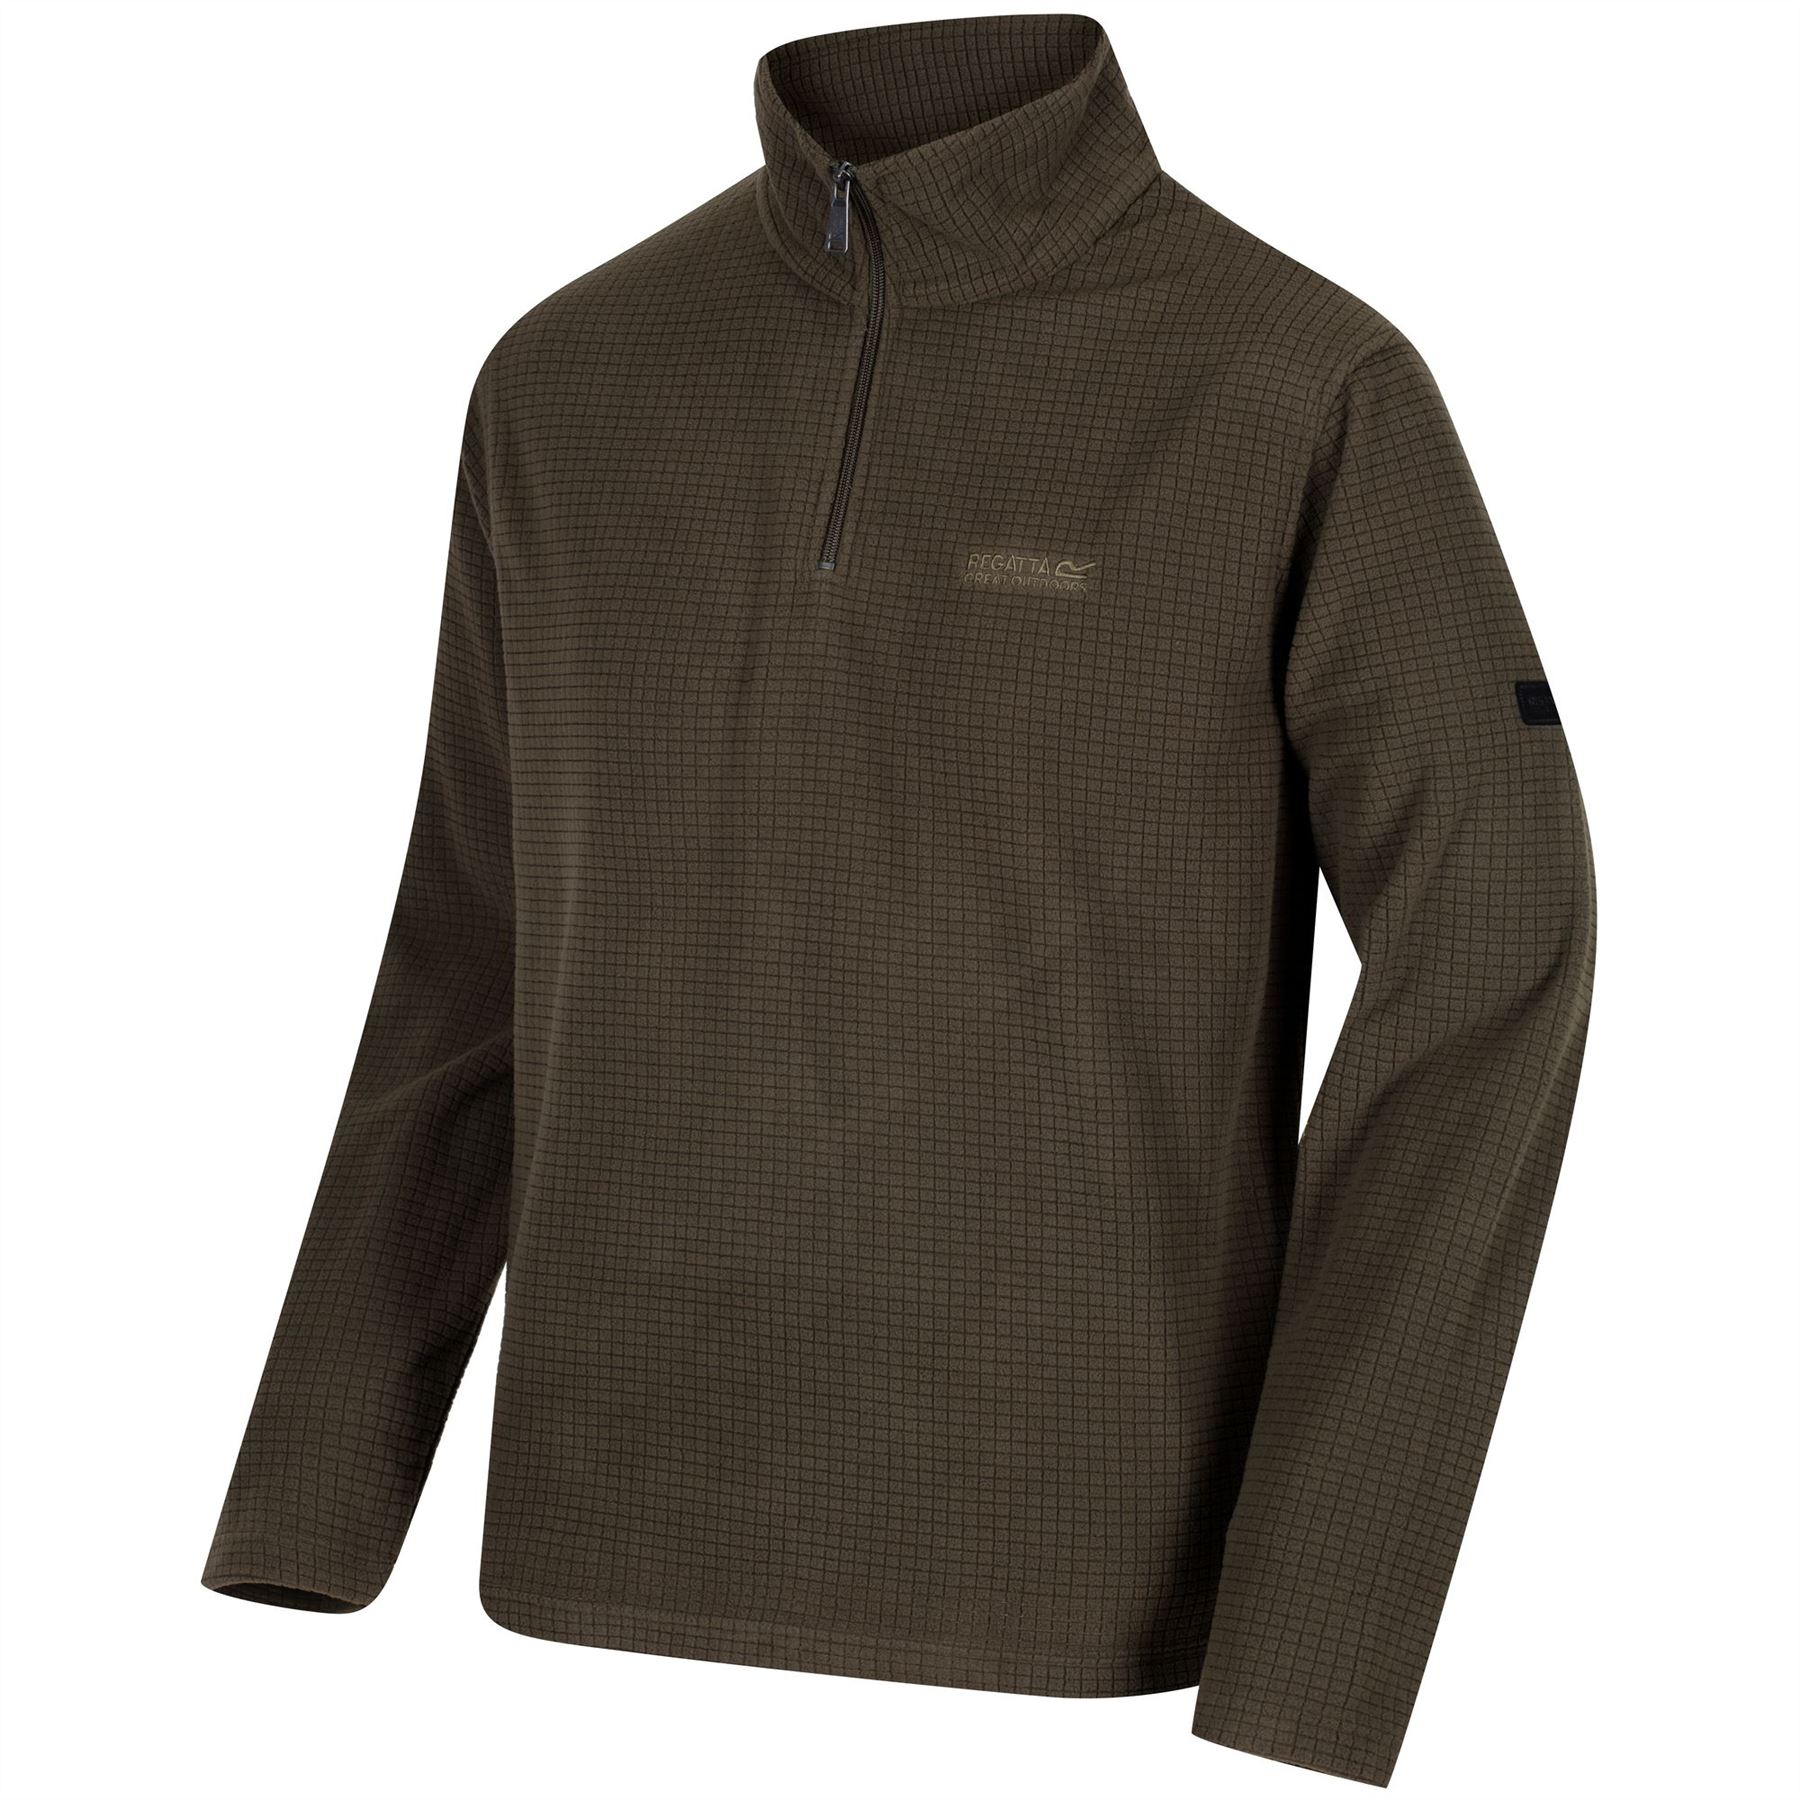 Regatta-Elgon-para-hombre-Half-Zip-Fleece-Pullover-Jumper-Top-RMA236 miniatura 15